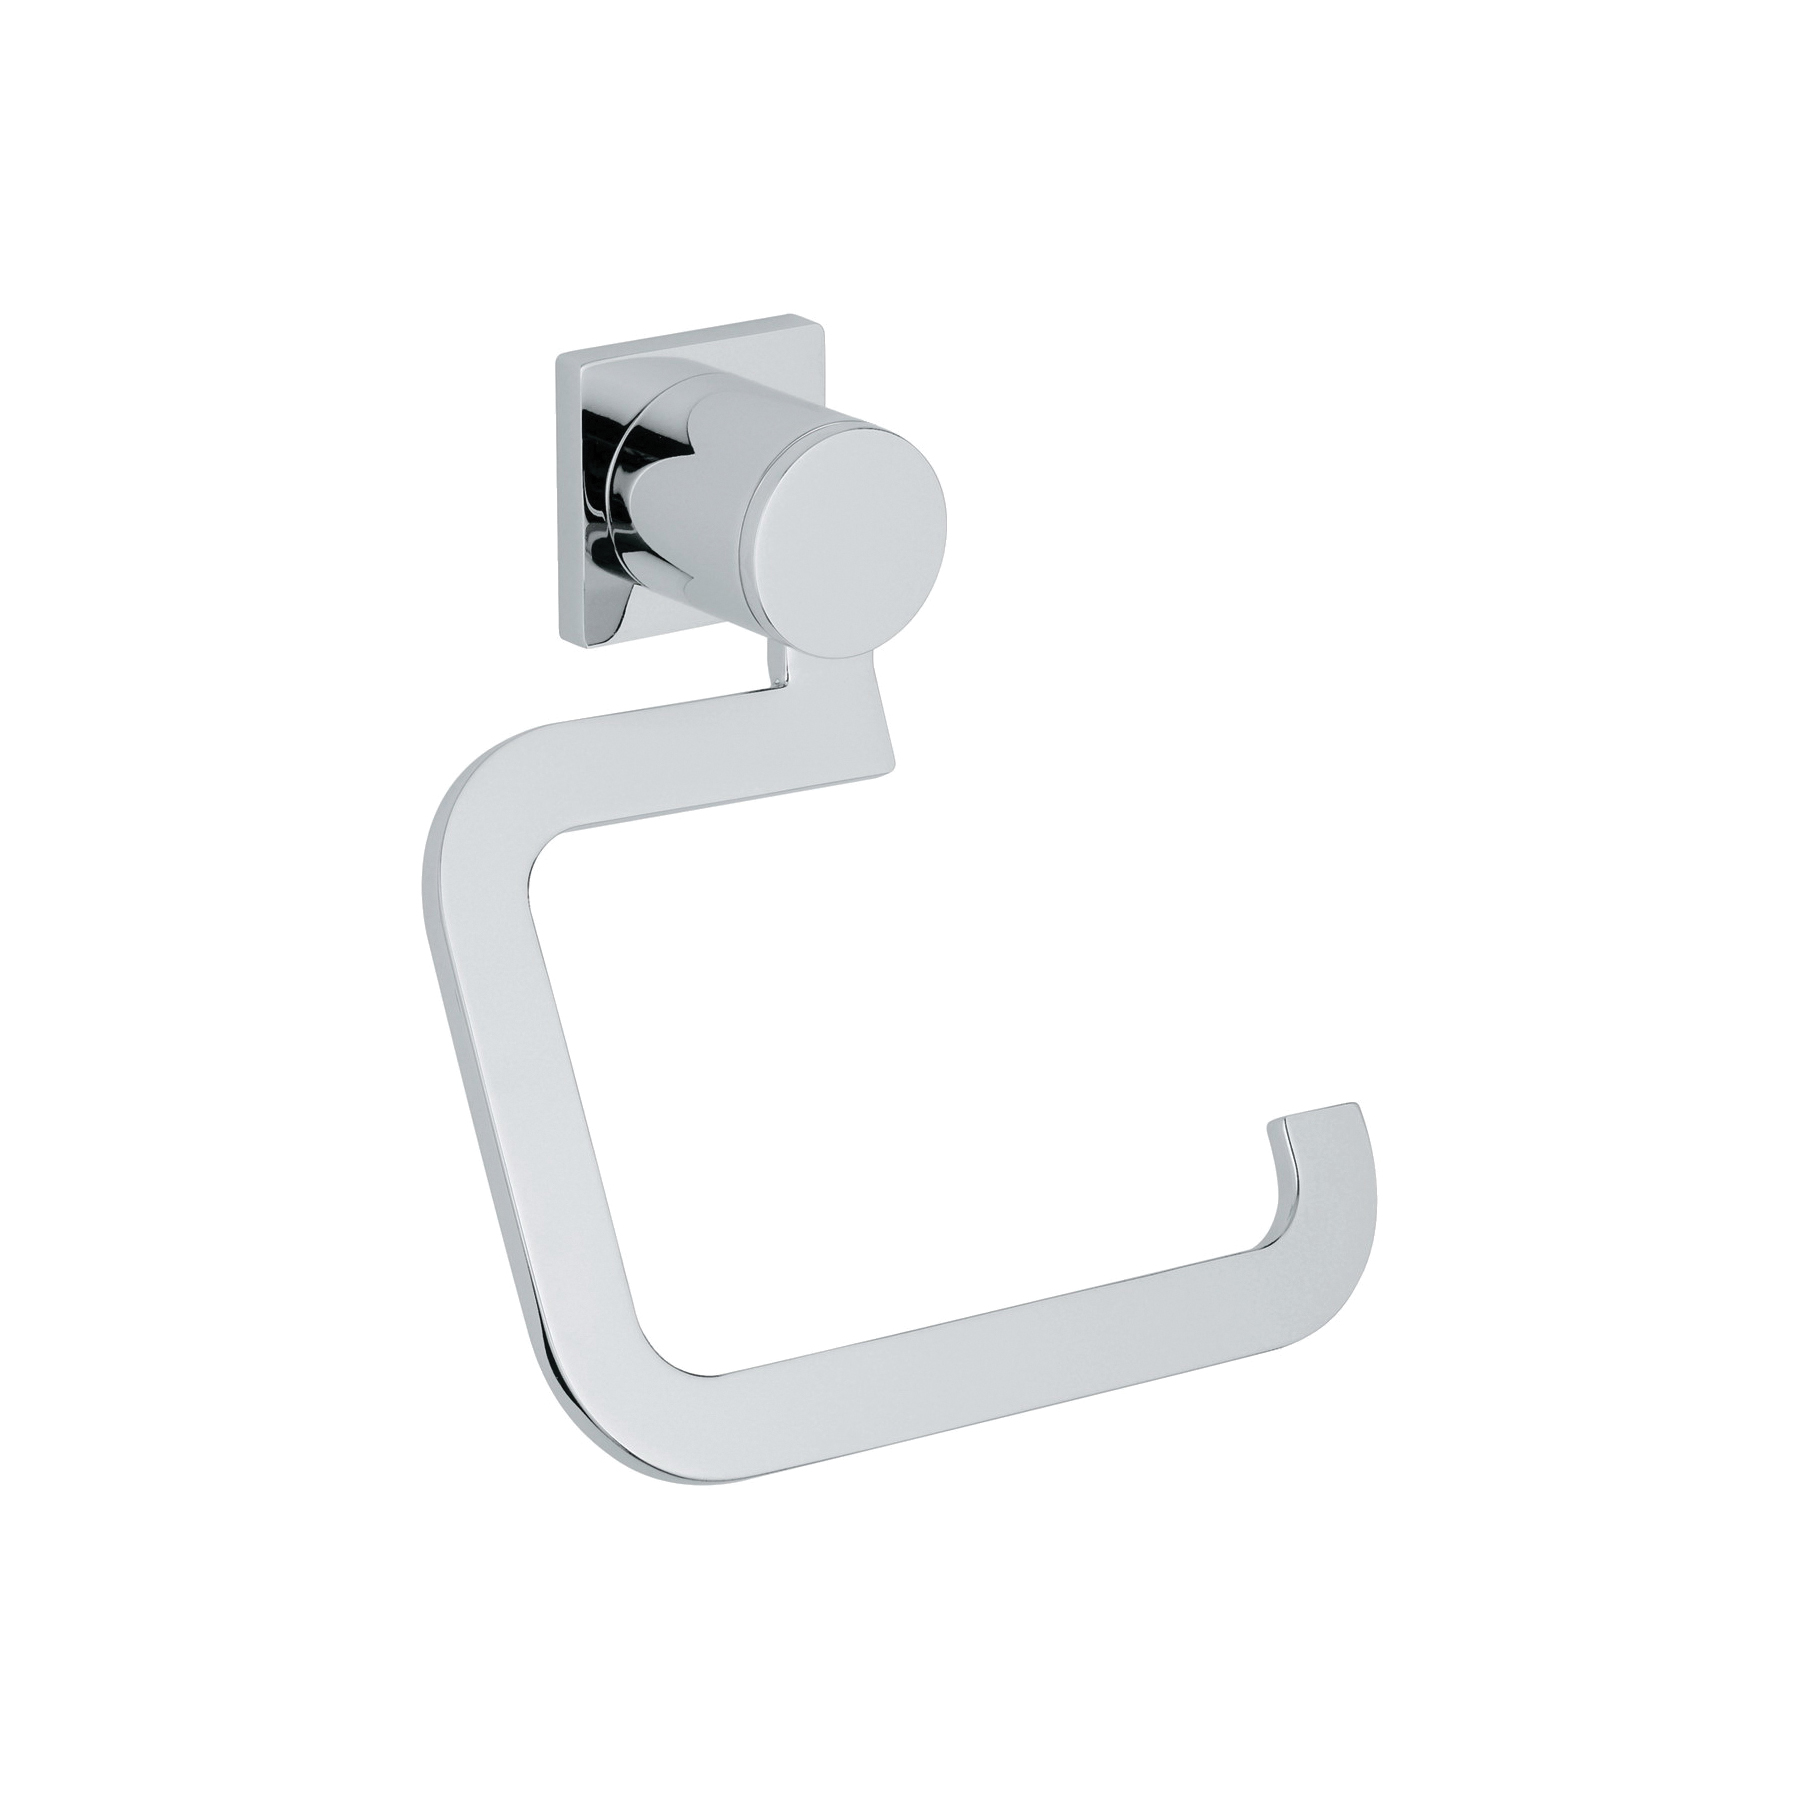 GROHE 40279000 Allure Toilet Paper Holder, 152 mm H, Brass, Chrome Plated, Import